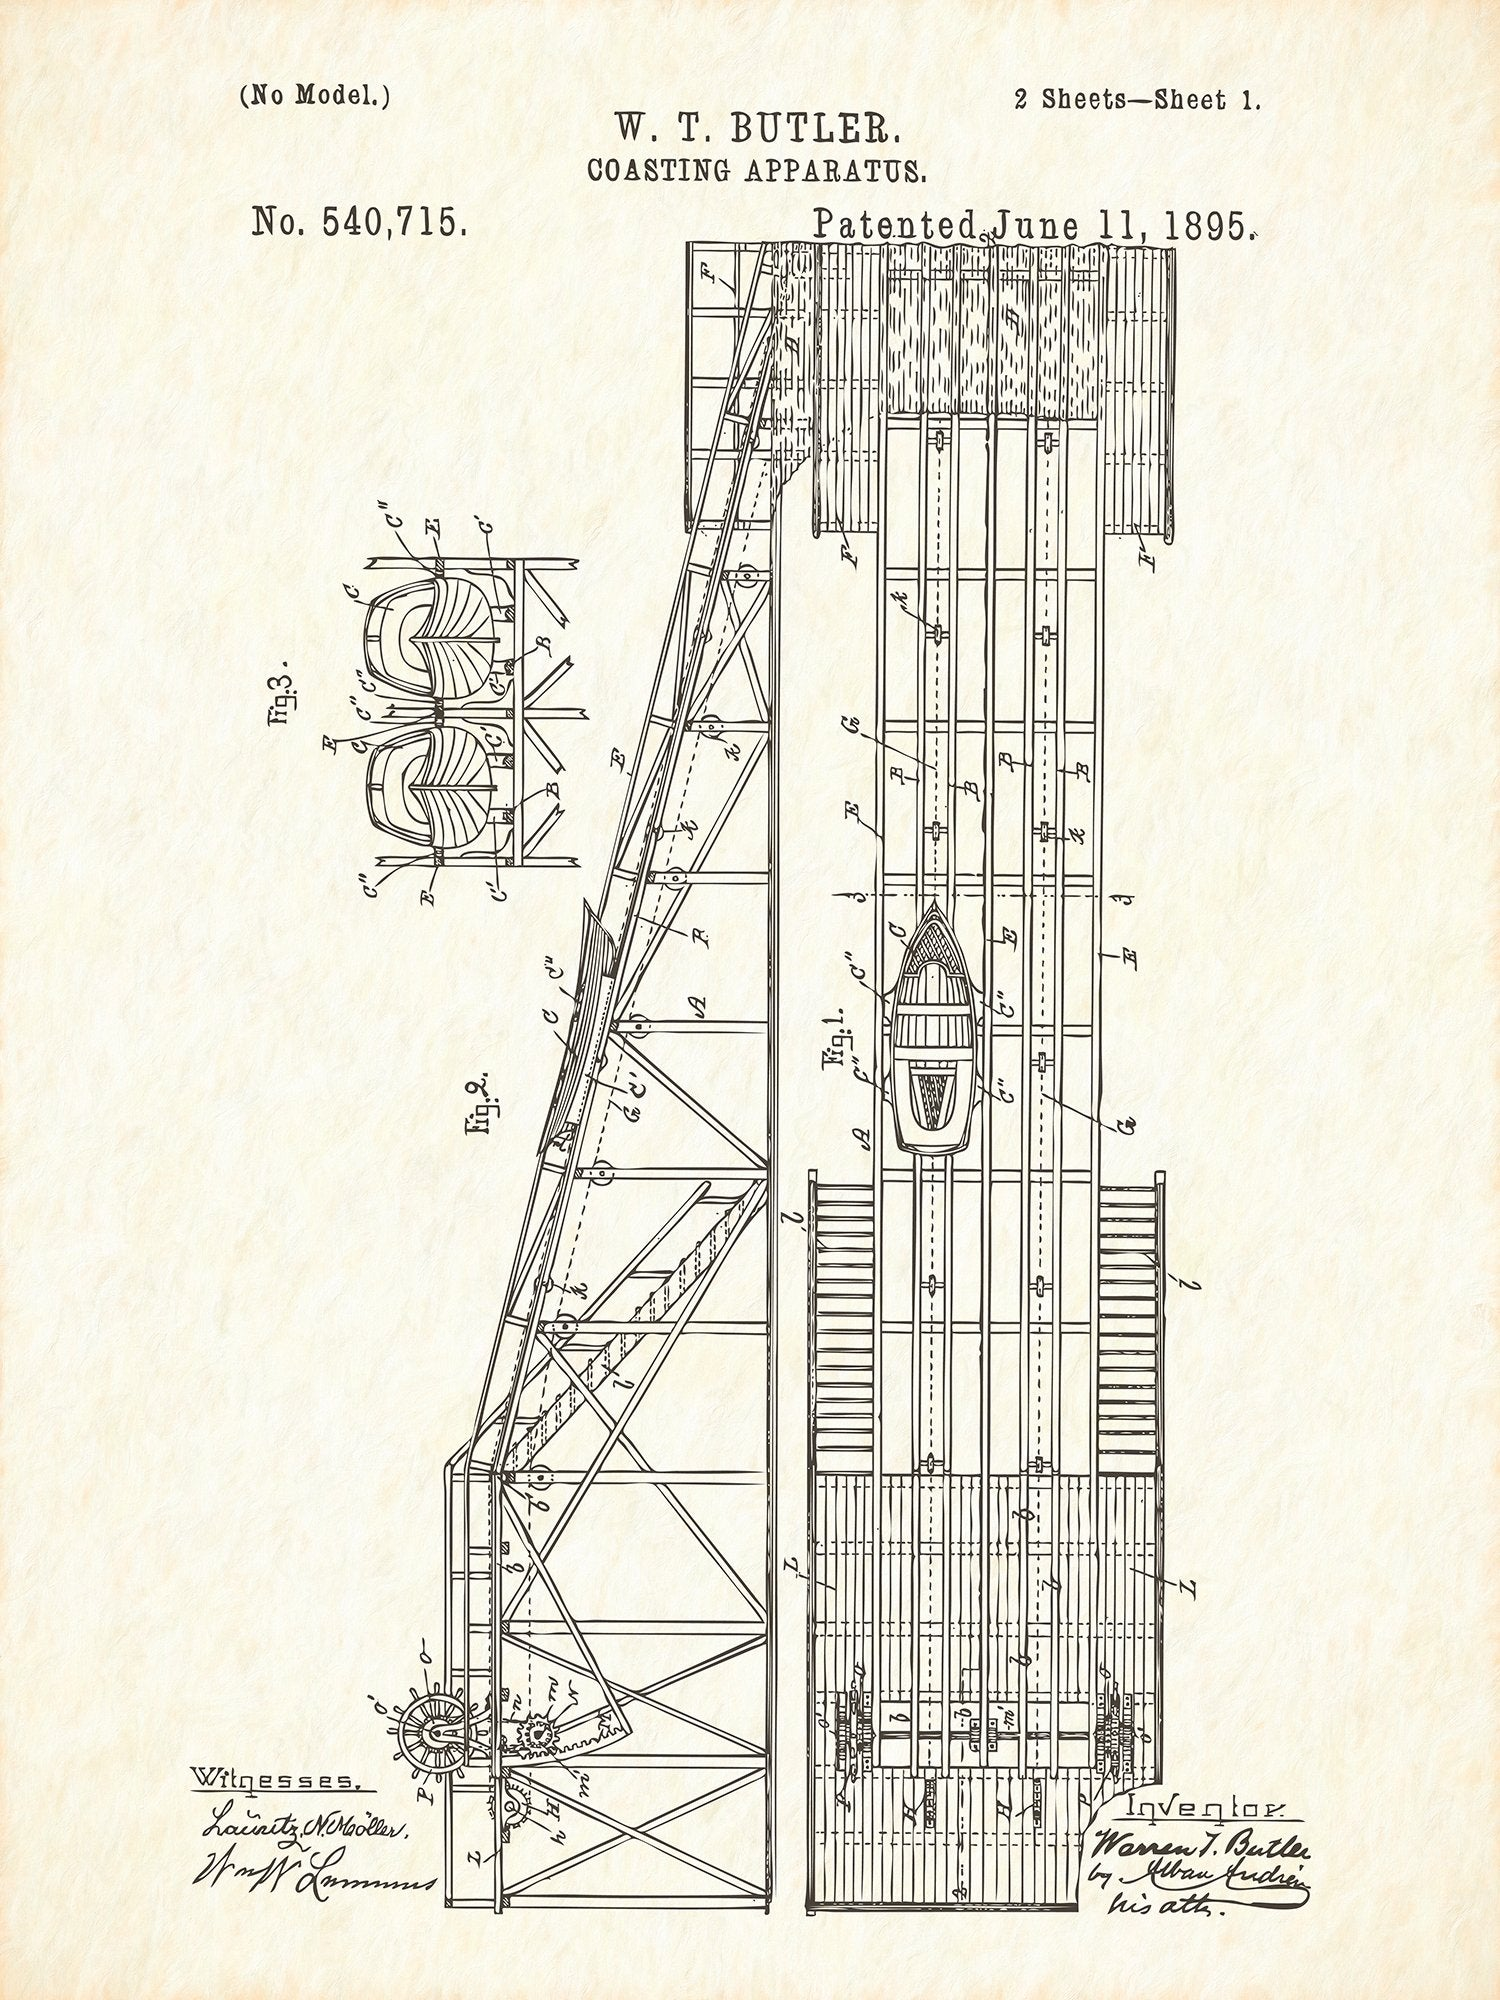 U.S. Patent No. 540715-1 Coasting Apparatus Reworked, Series 1